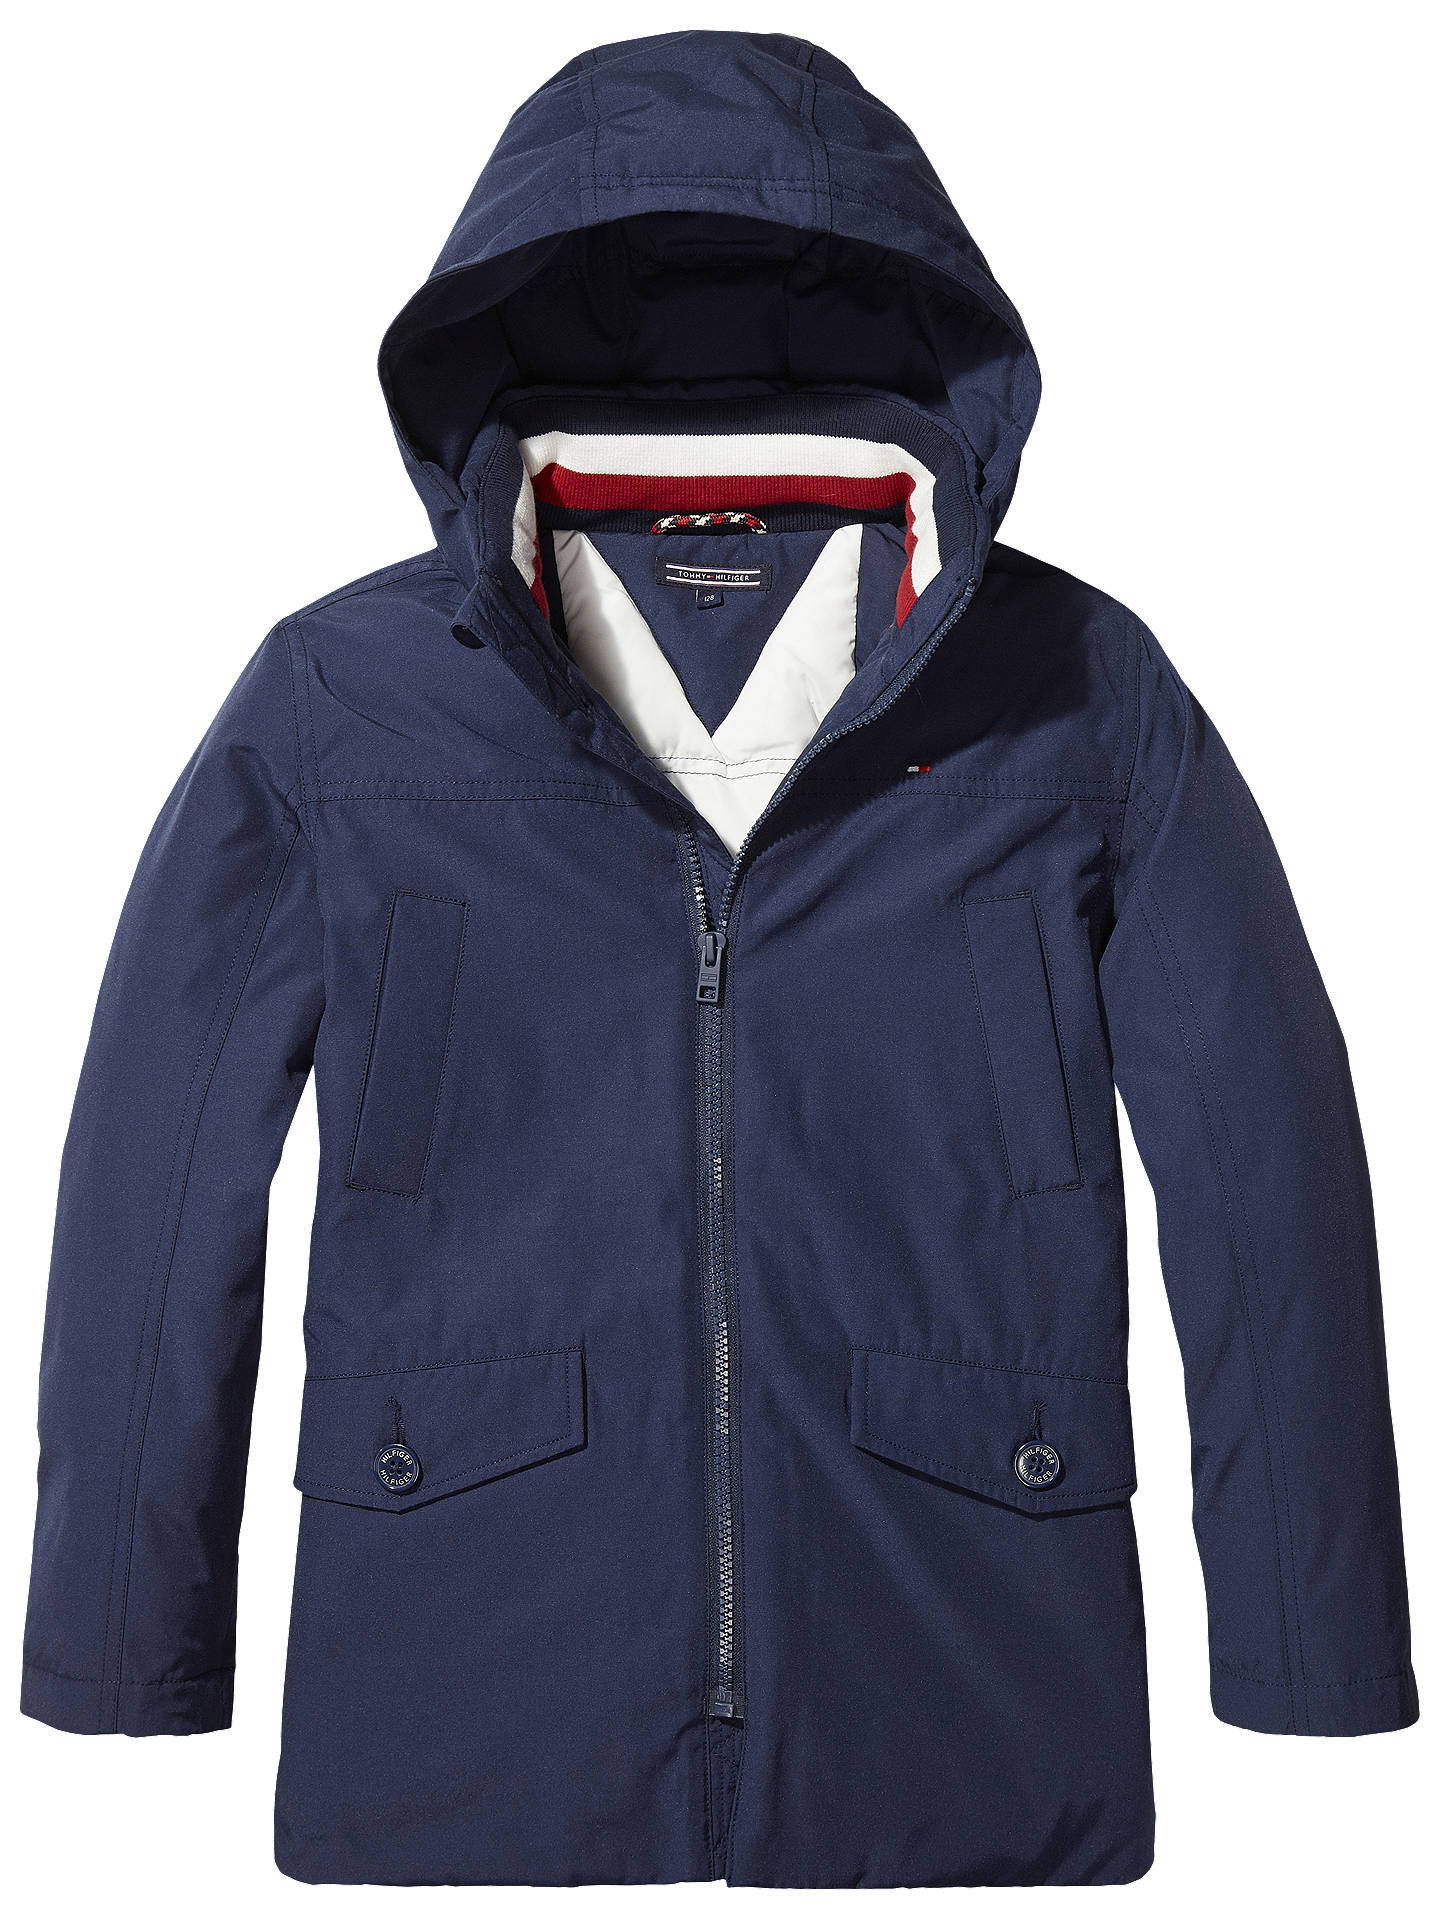 fbc0b17d891 Buy Tommy Hilfiger Boys' Padded Parka, Navy, 12 years Online at johnlewis.